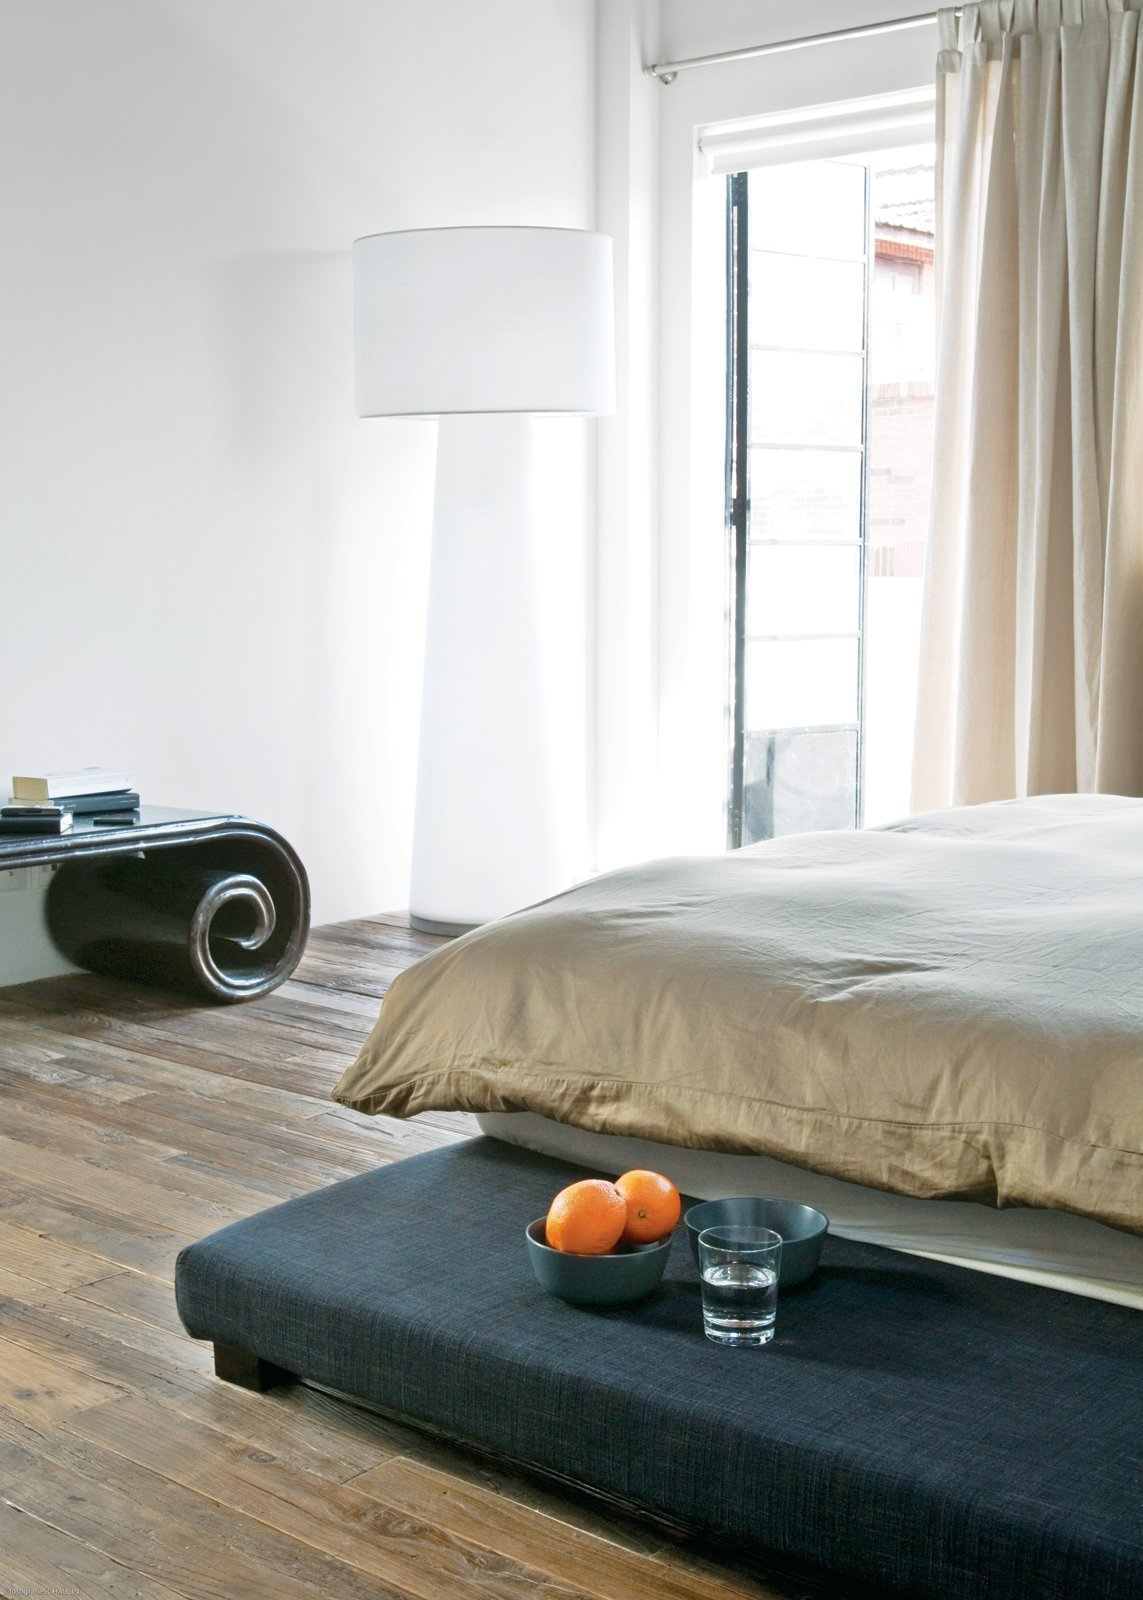 Bedroom and Bed A Progetto Oggetto lamp by Marcel Wanders occupies a corner in the bedroom.  Photo 8 of 11 in Modern Lilong House Renovation in Shanghai